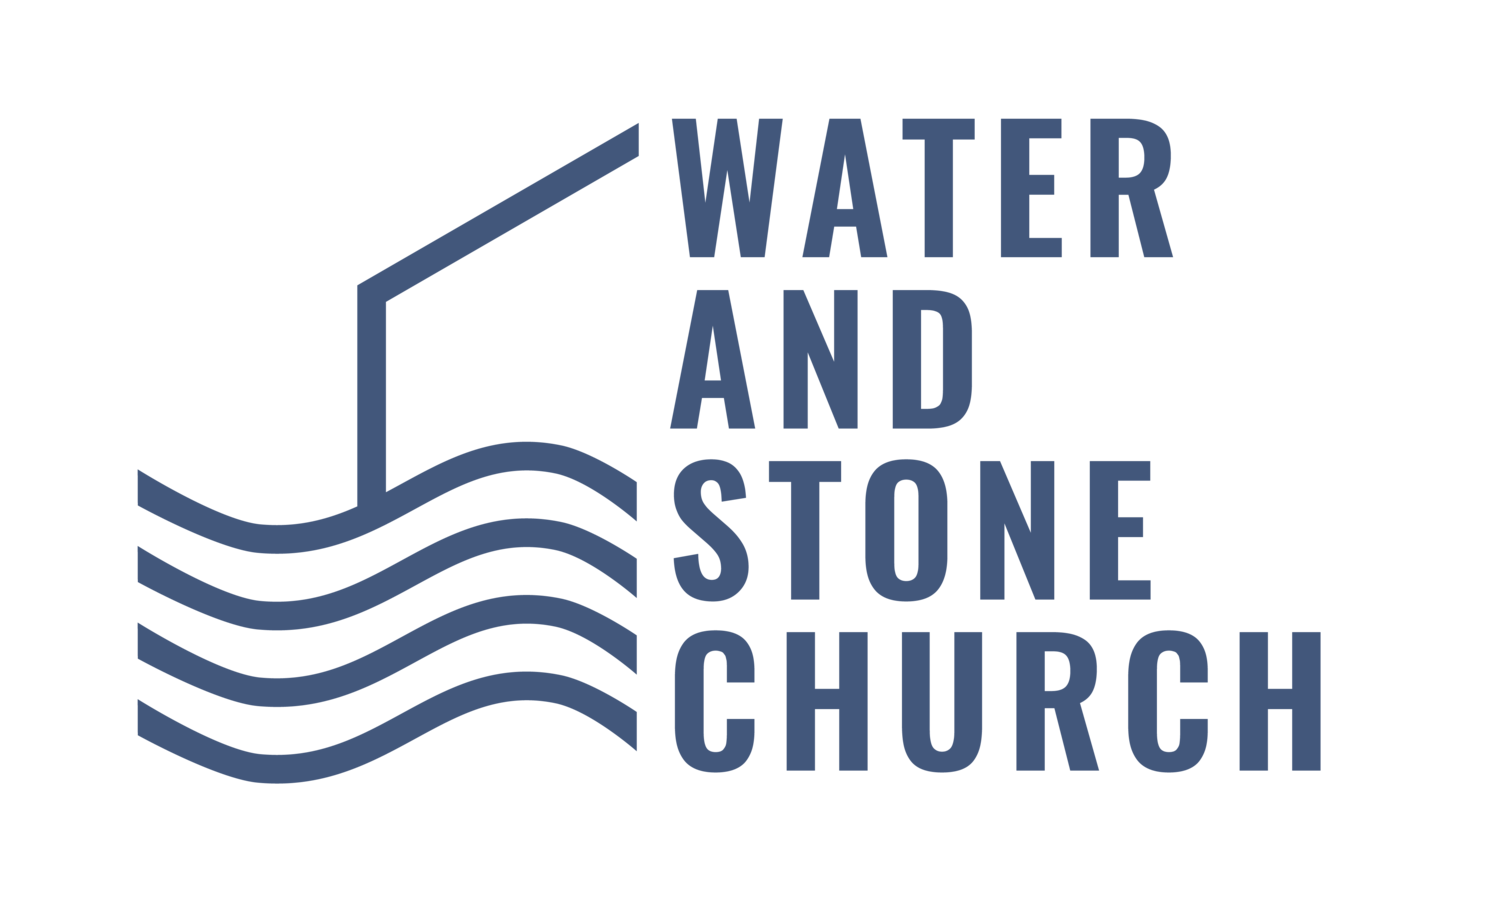 Water and Stone Church